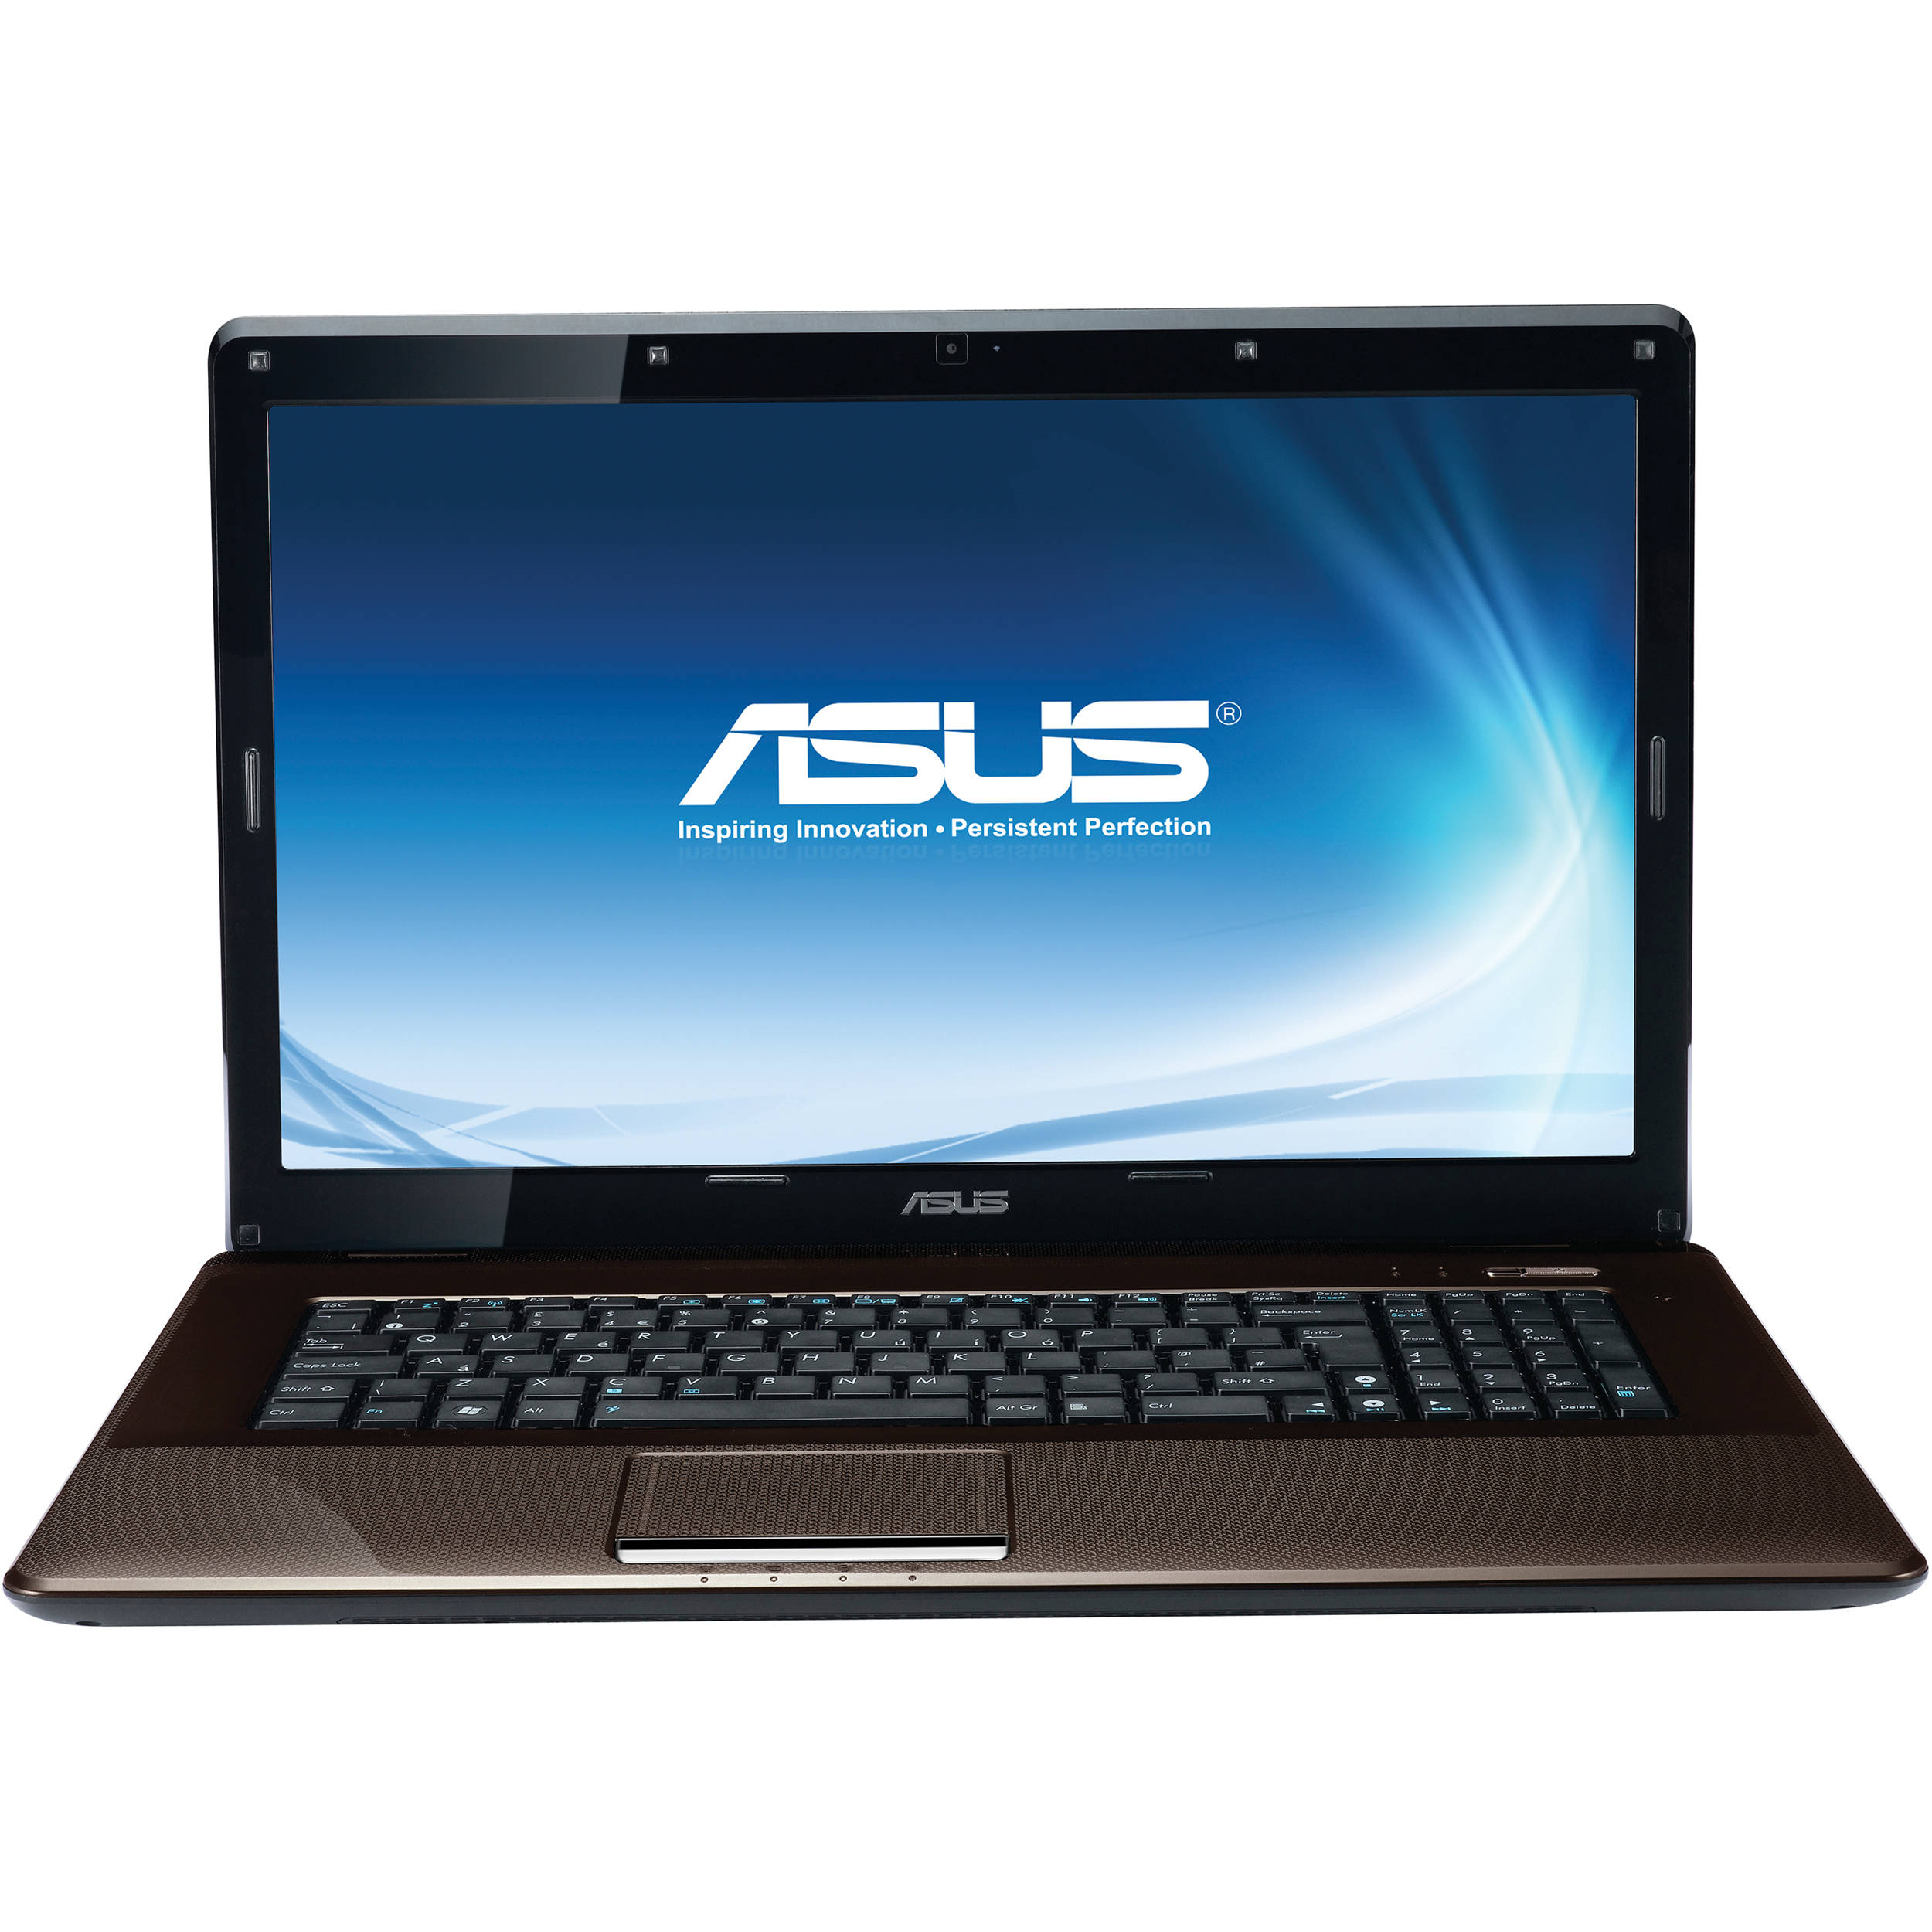 ASUS K72JR NOTEBOOK INTEL 1000 WIFI DRIVER FOR WINDOWS DOWNLOAD